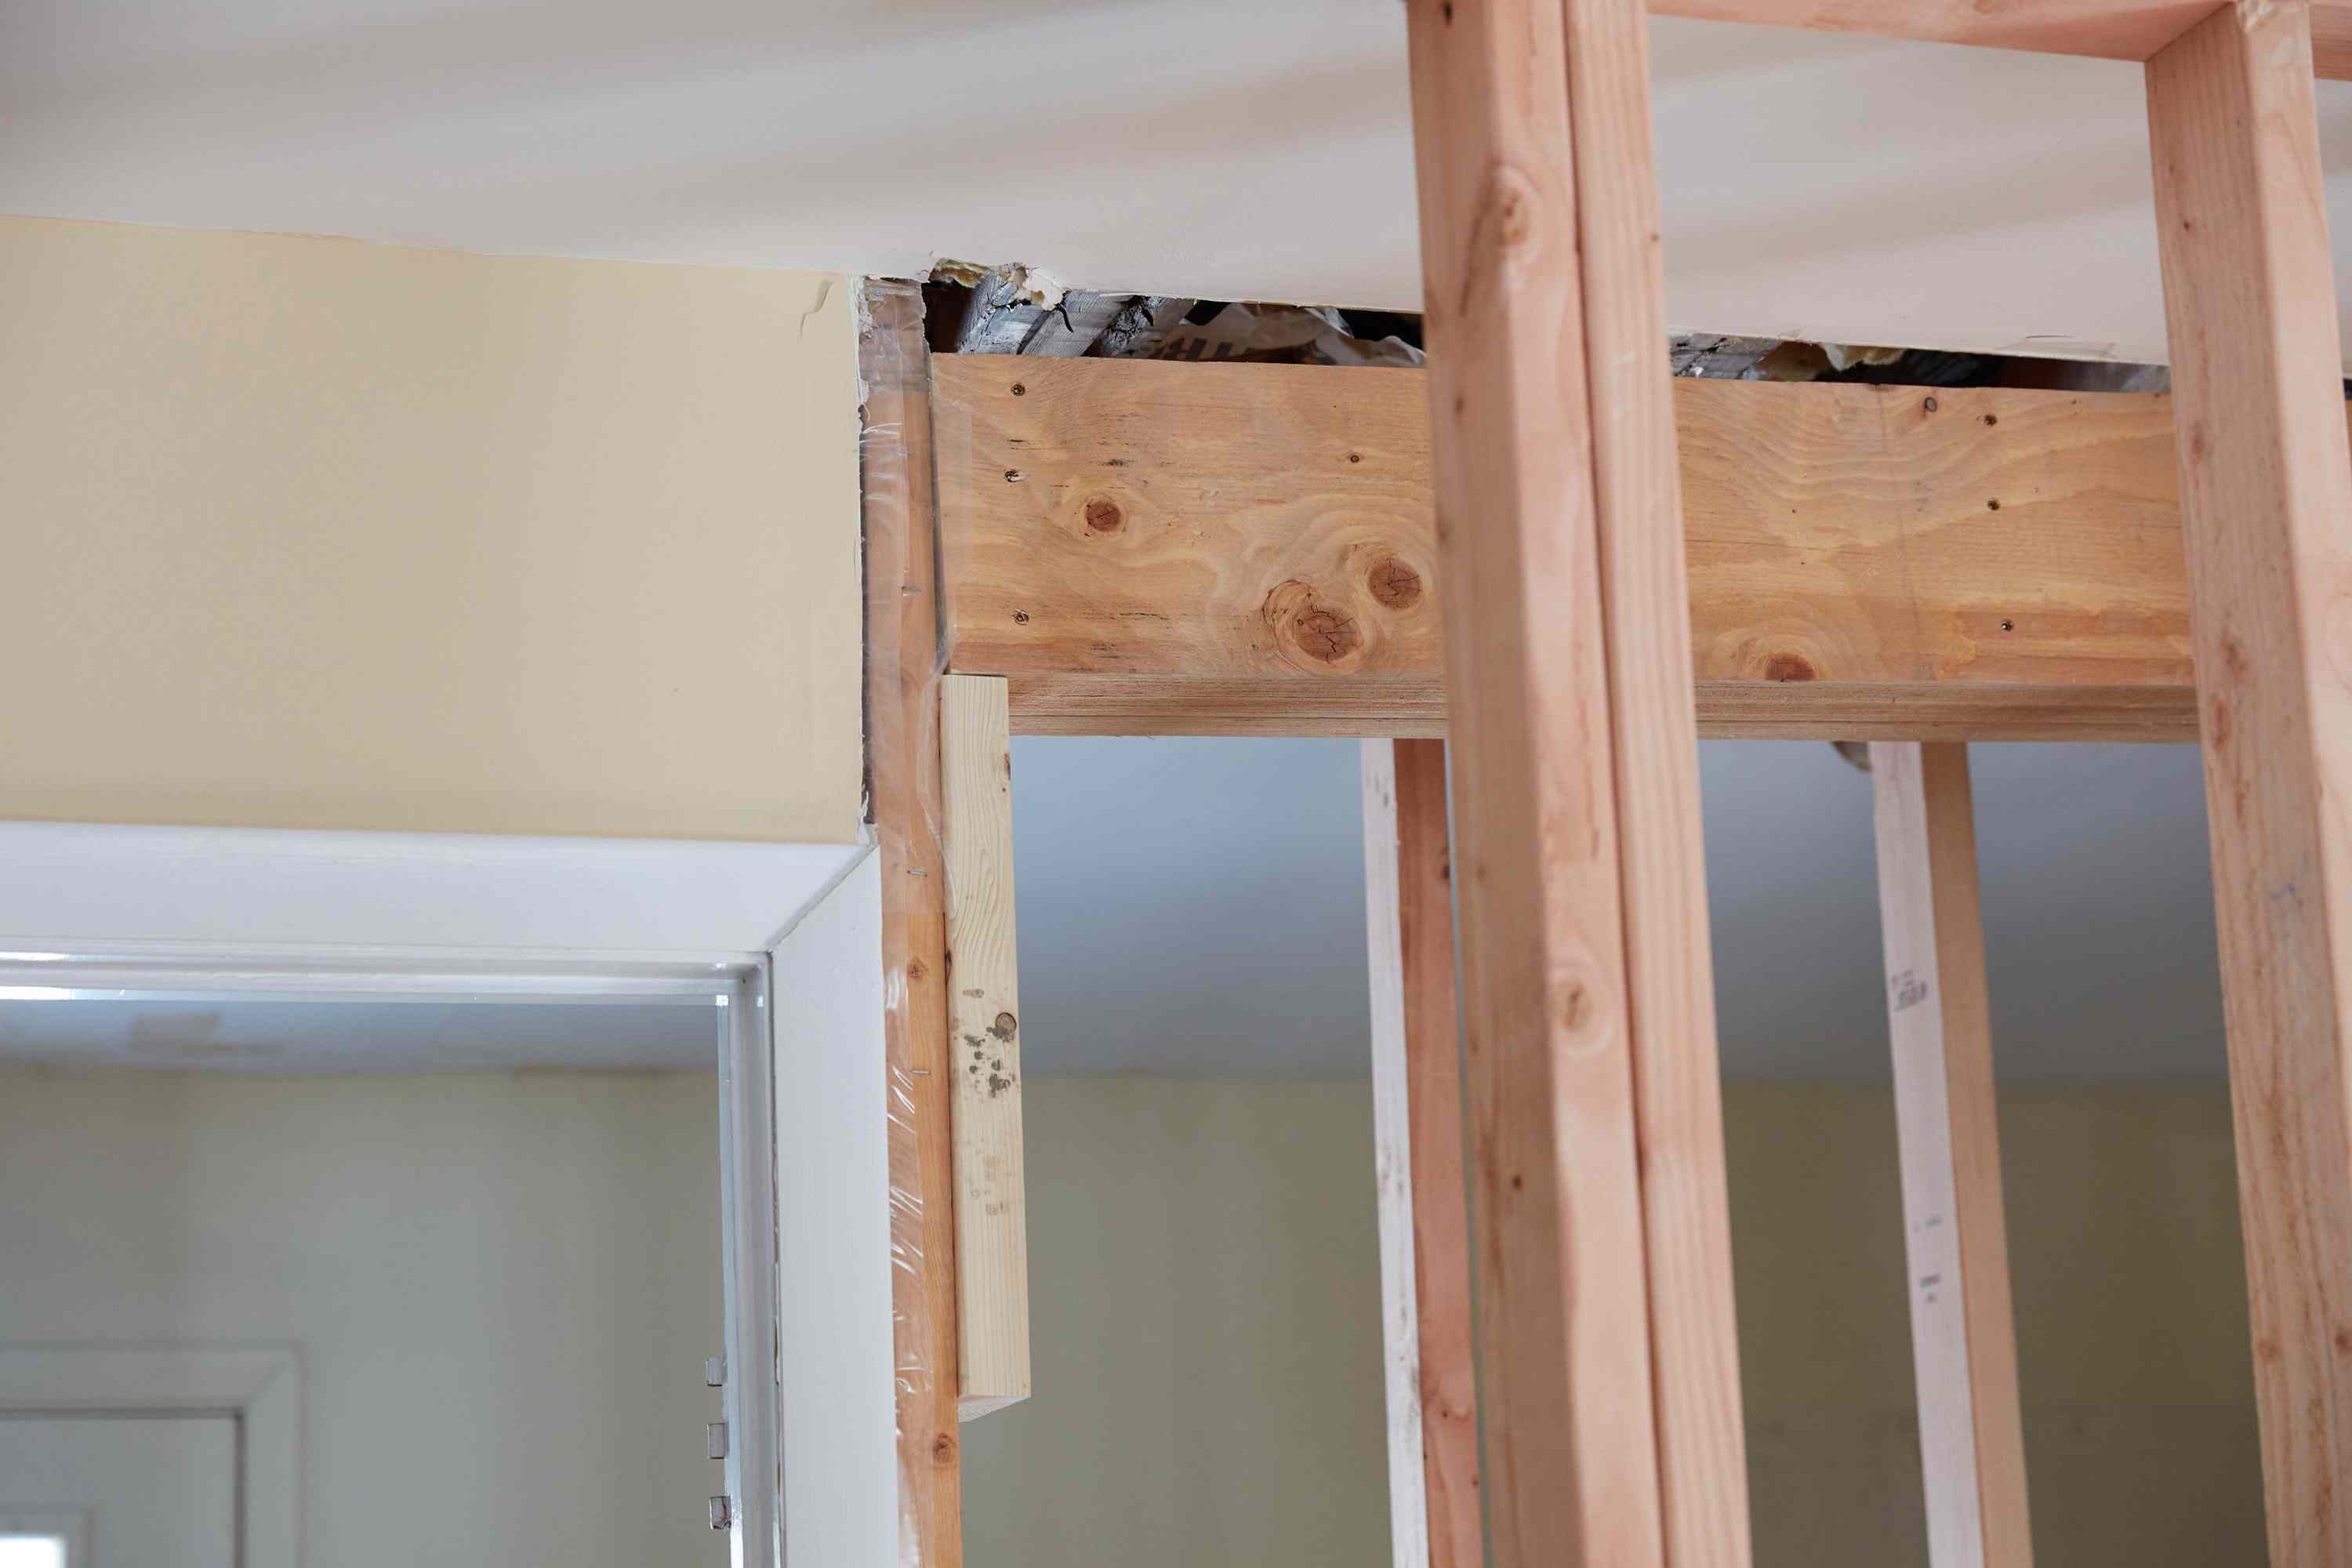 Temporary beam ledger attached under load bearing wall structure